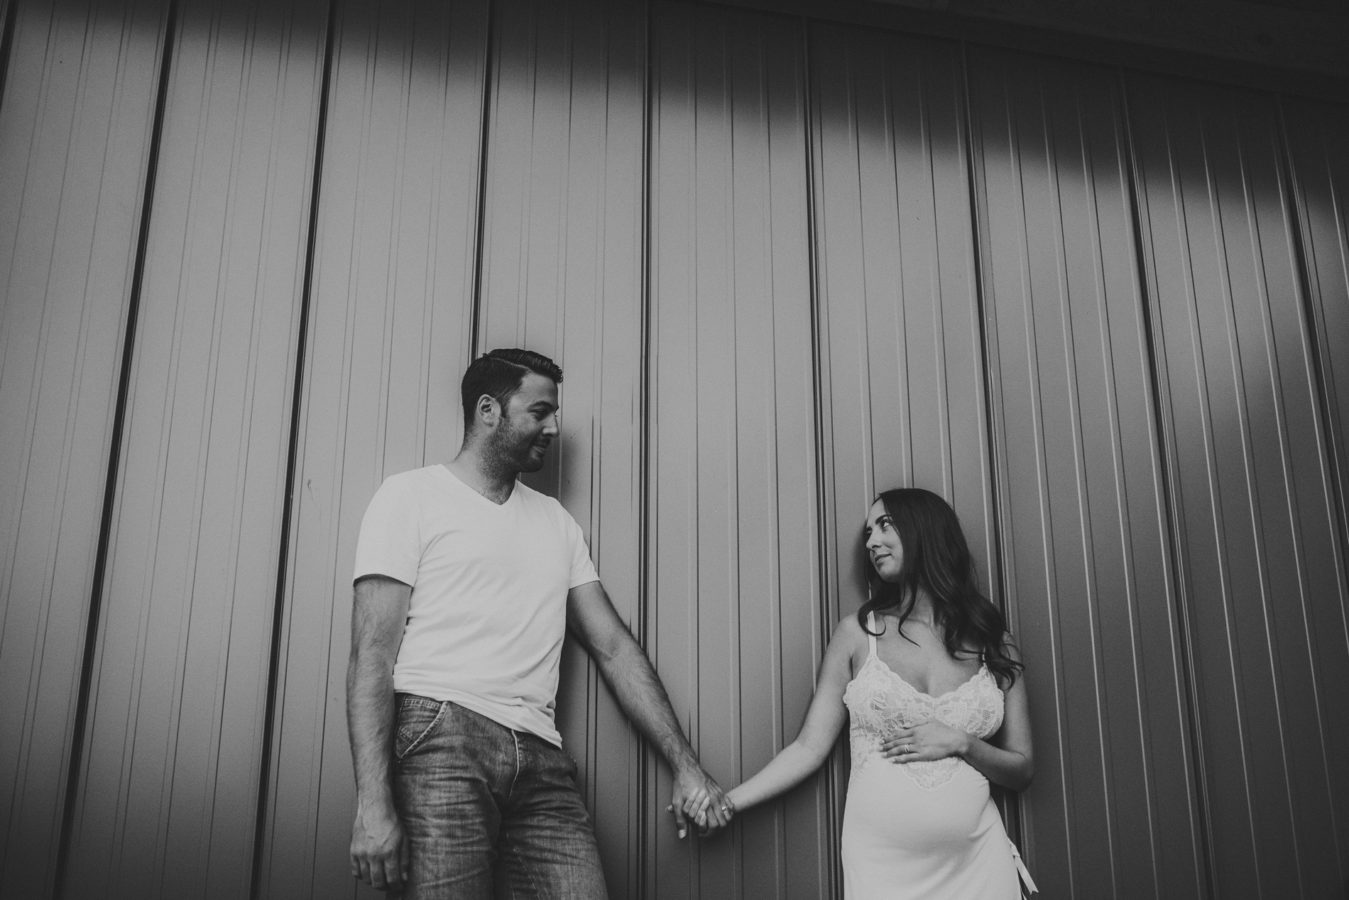 pregnant woman and her husband leaning up against a metal wall holding hands